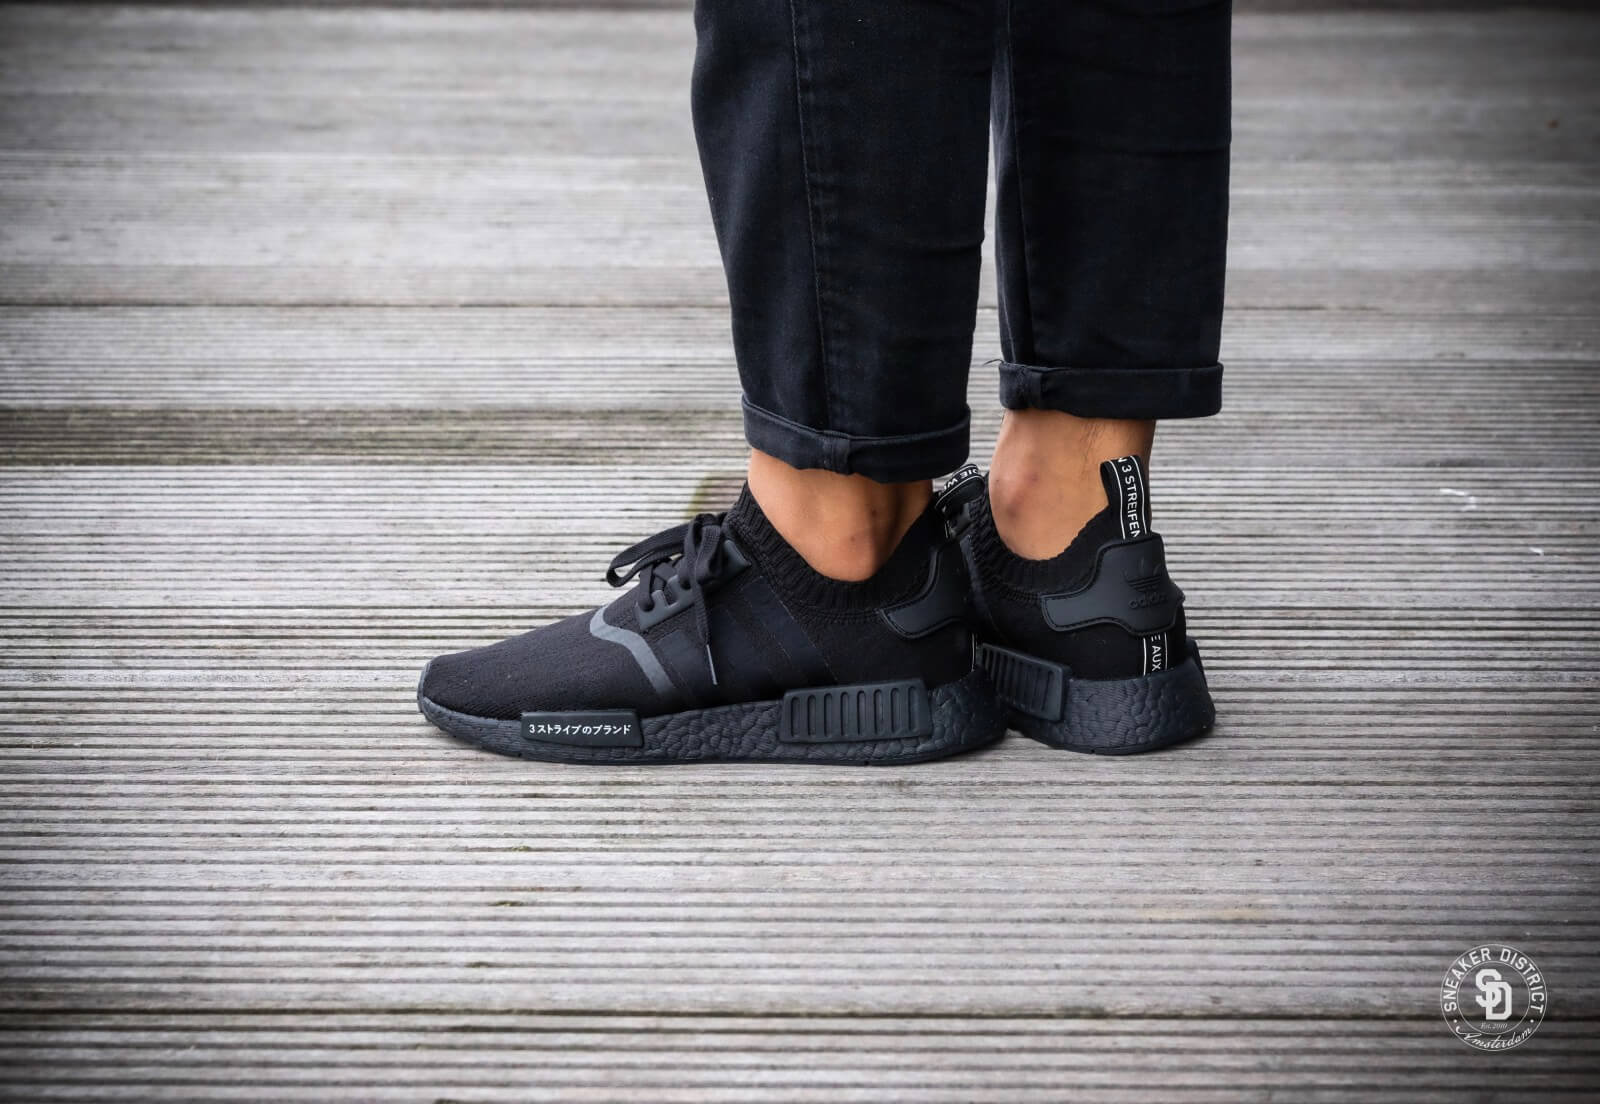 Adidas NMD R1 PK Primeknit BY1887 Gum Pack Core Black 9.5 43